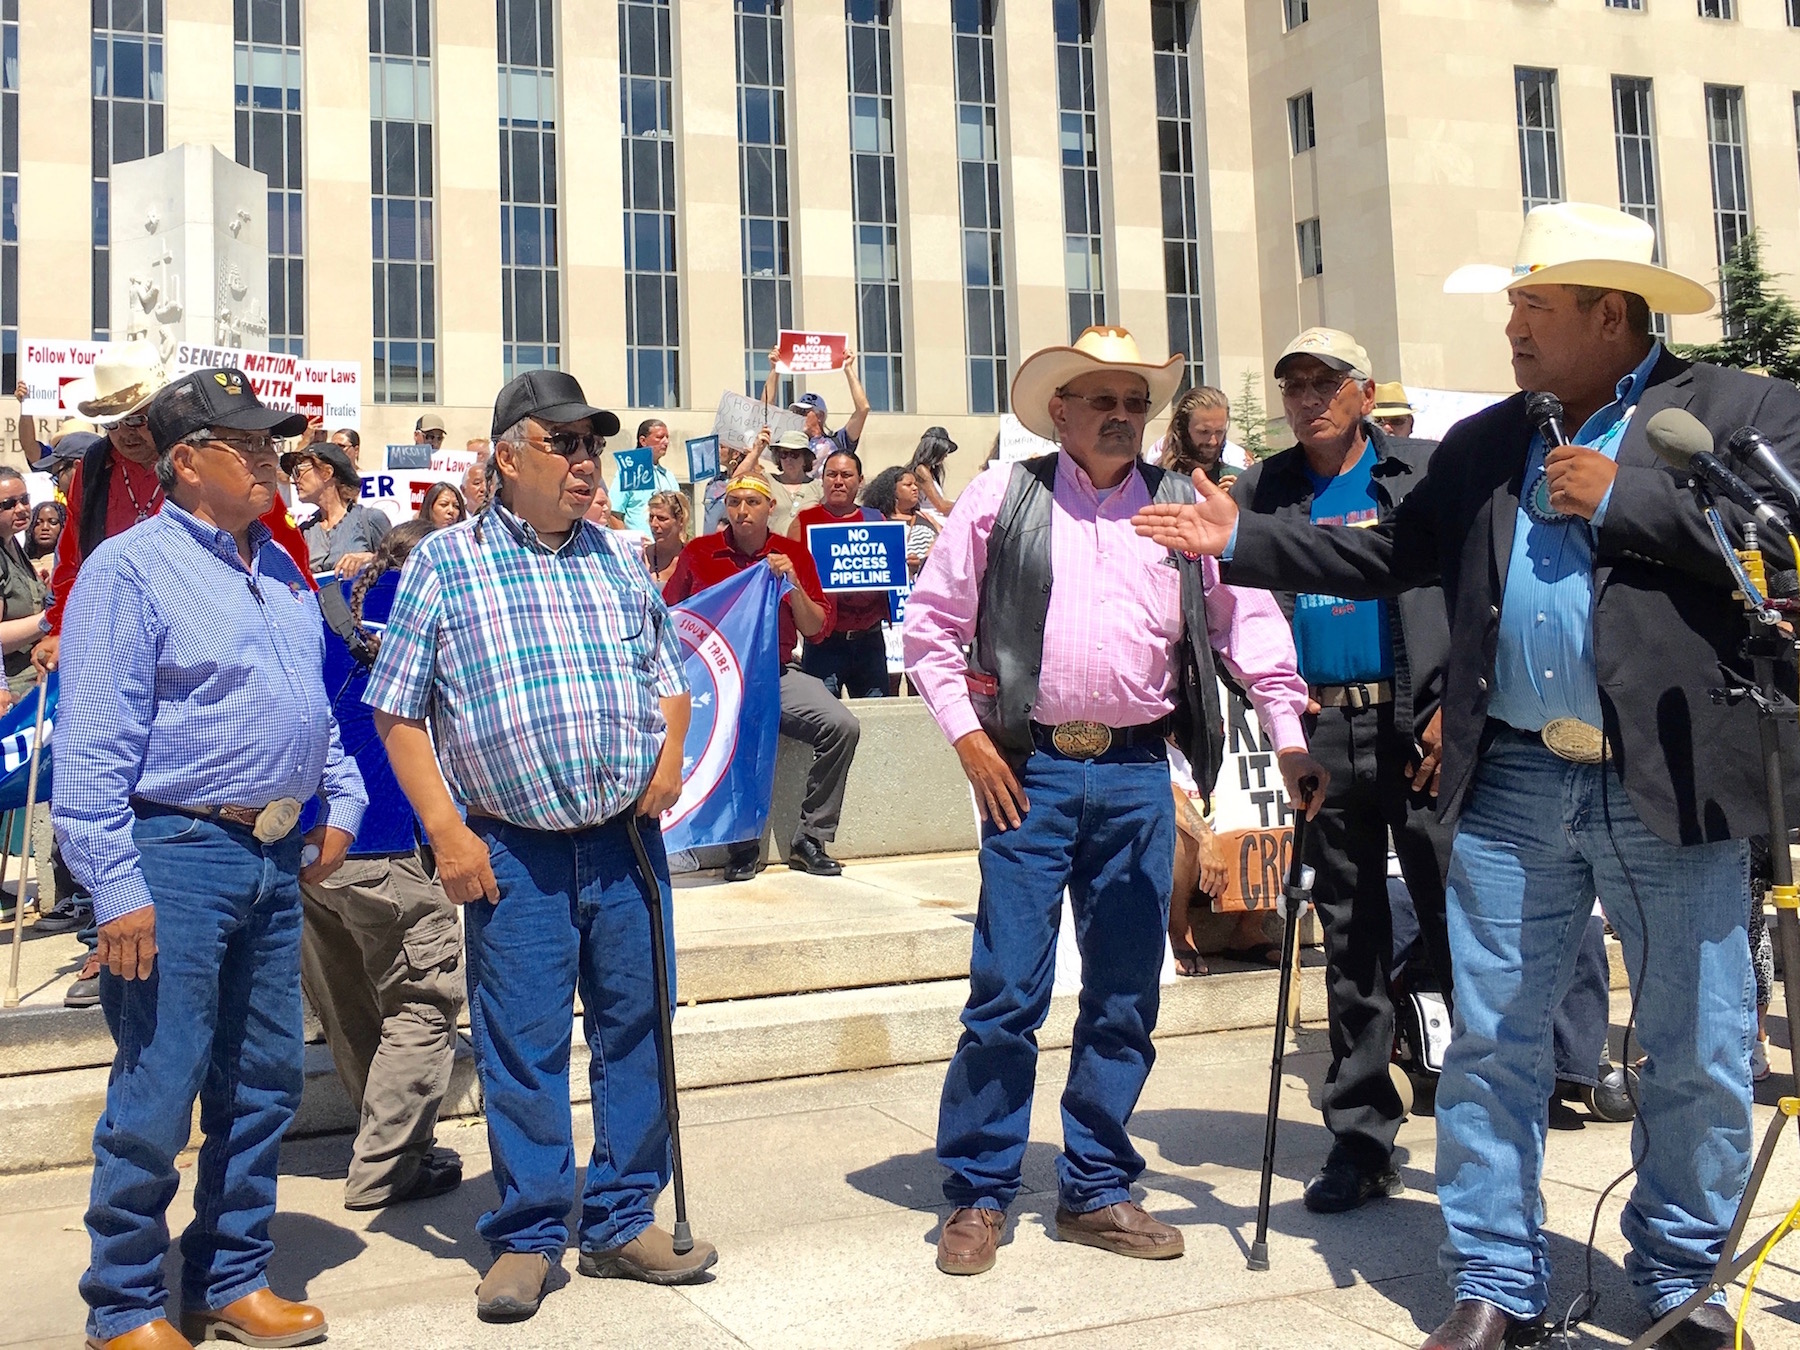 Cheyenne River Sioux Tribe tries to revive #NoDAPL complaint